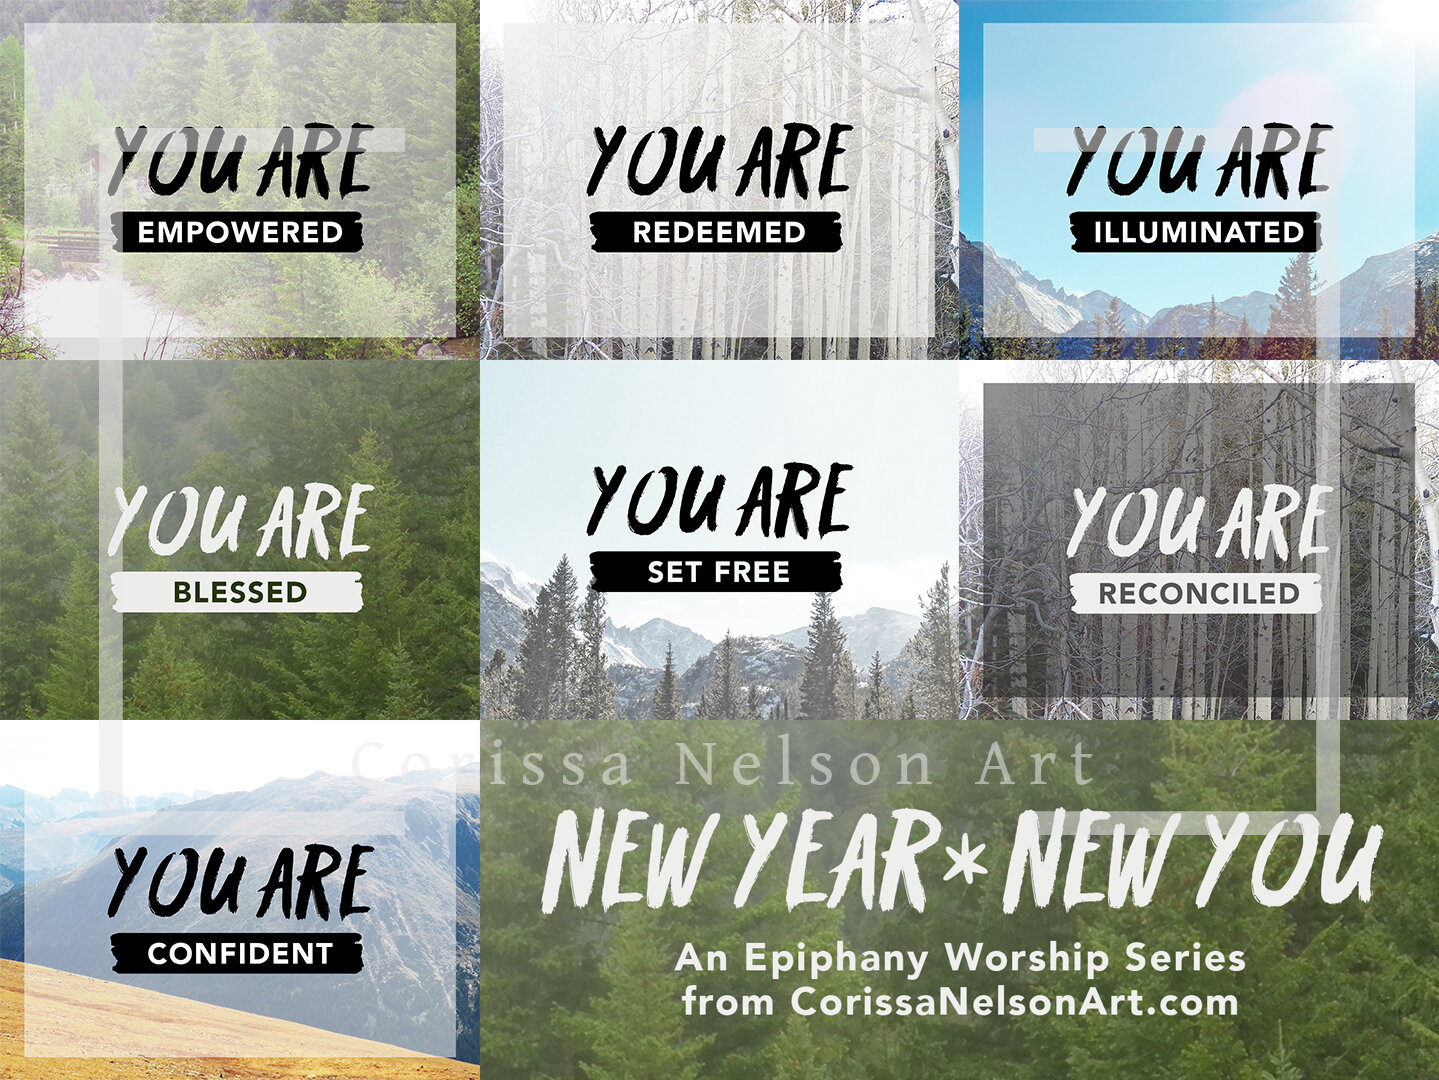 New! A series for Epiphany through Transfiguration